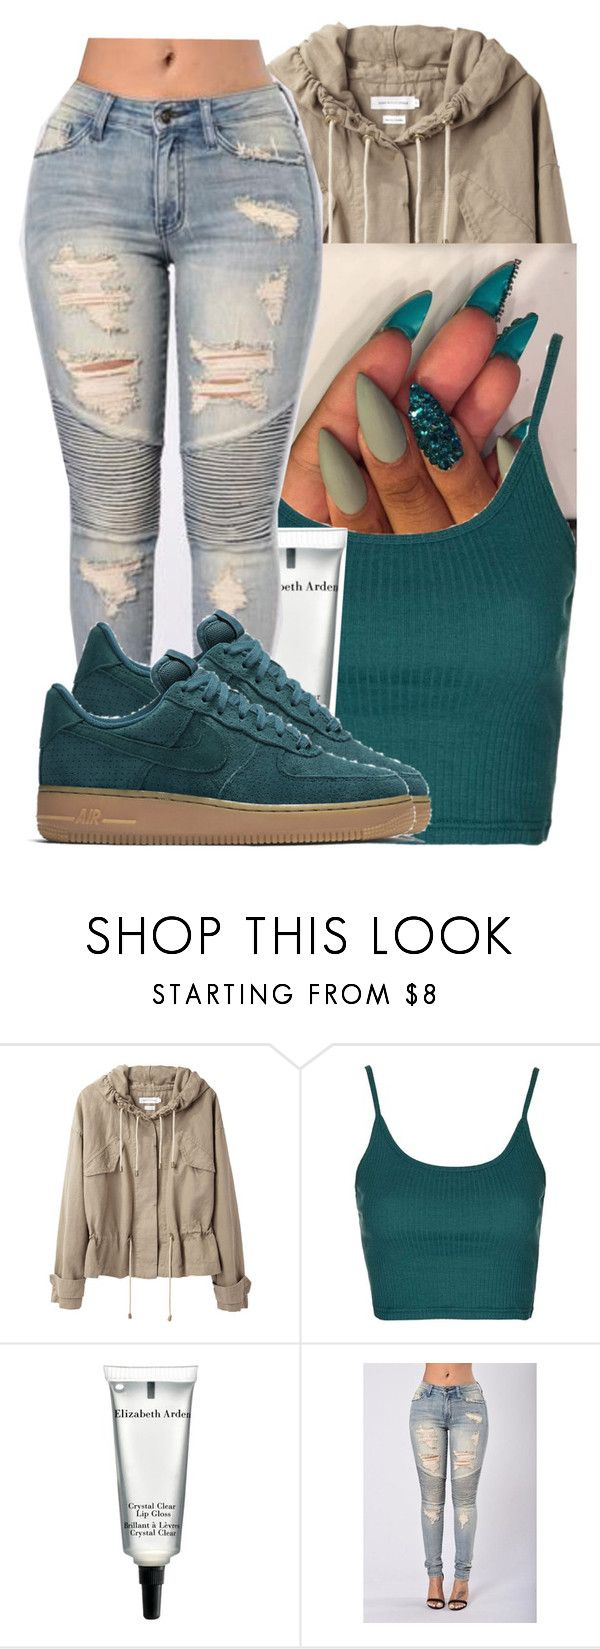 """Untitled #2553"" by kayla77johnson ❤ liked on Polyvore featuring Étoile Isabel Marant, Topshop, Elizabeth Arden and NIKE"